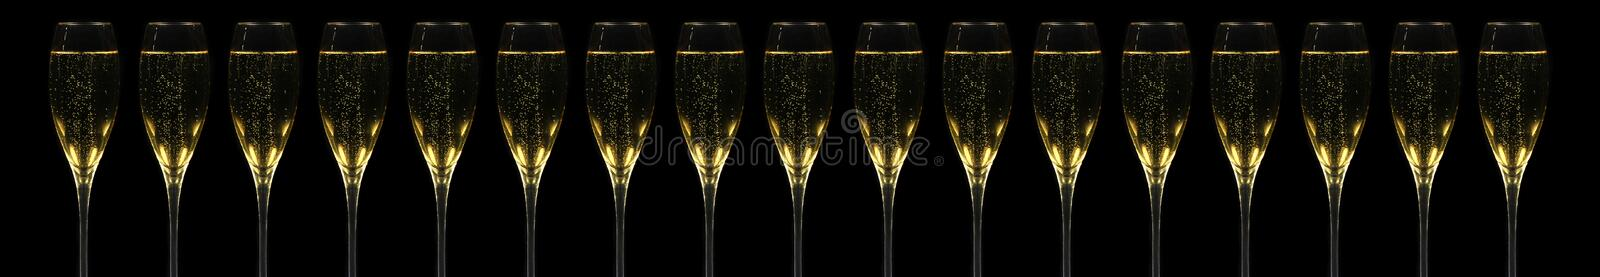 Champagner Flutes. Very long banner with 17 champagner flutes in a row over black royalty free stock photo